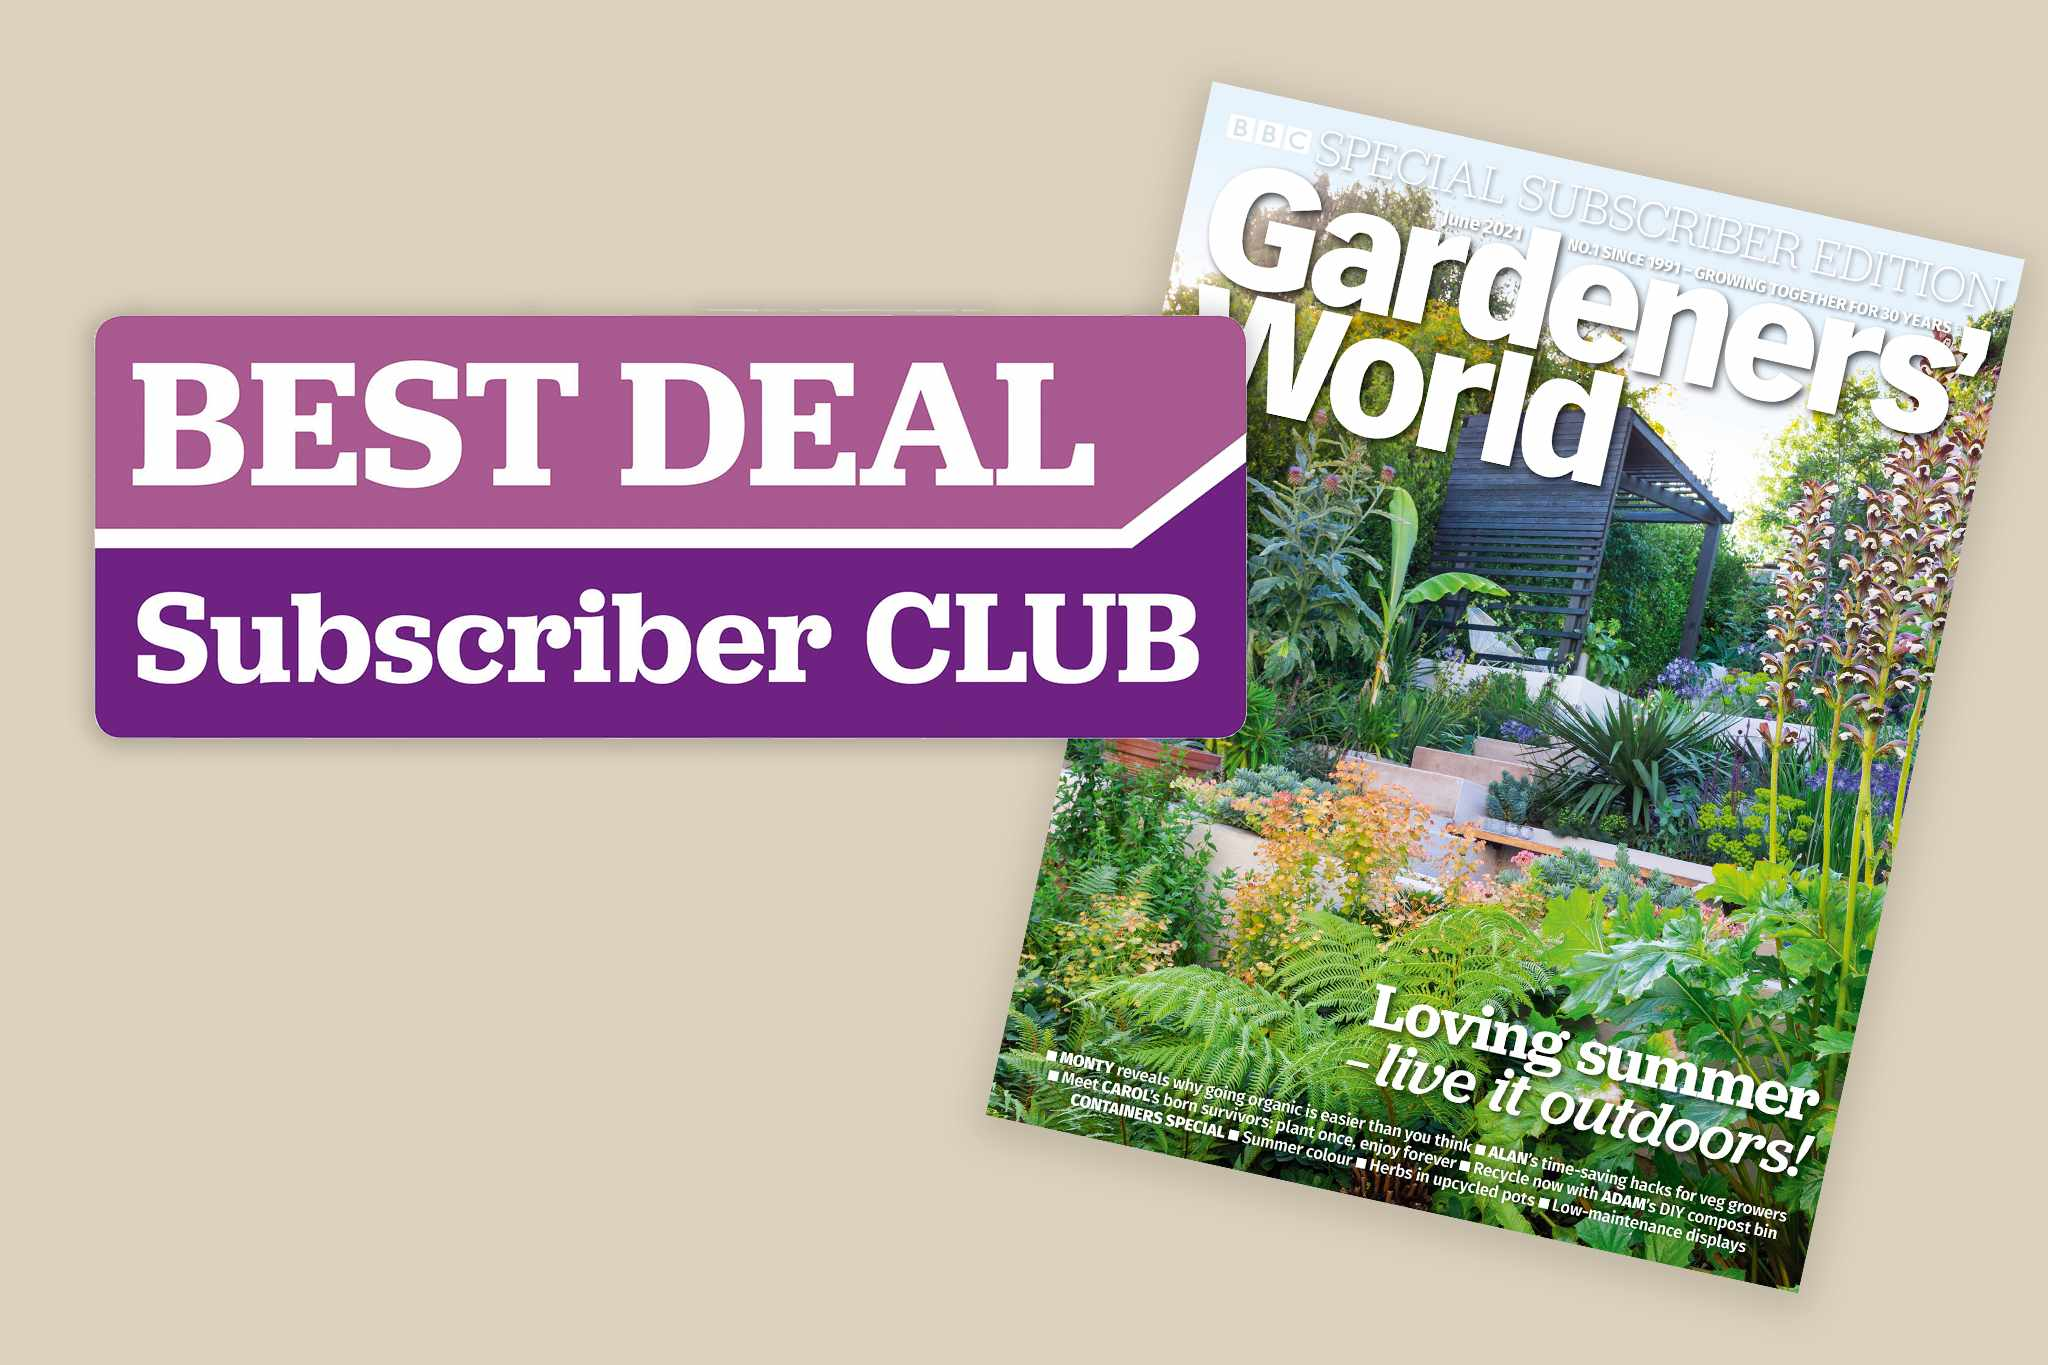 New June issue - subscribers save 10% with our selected partners